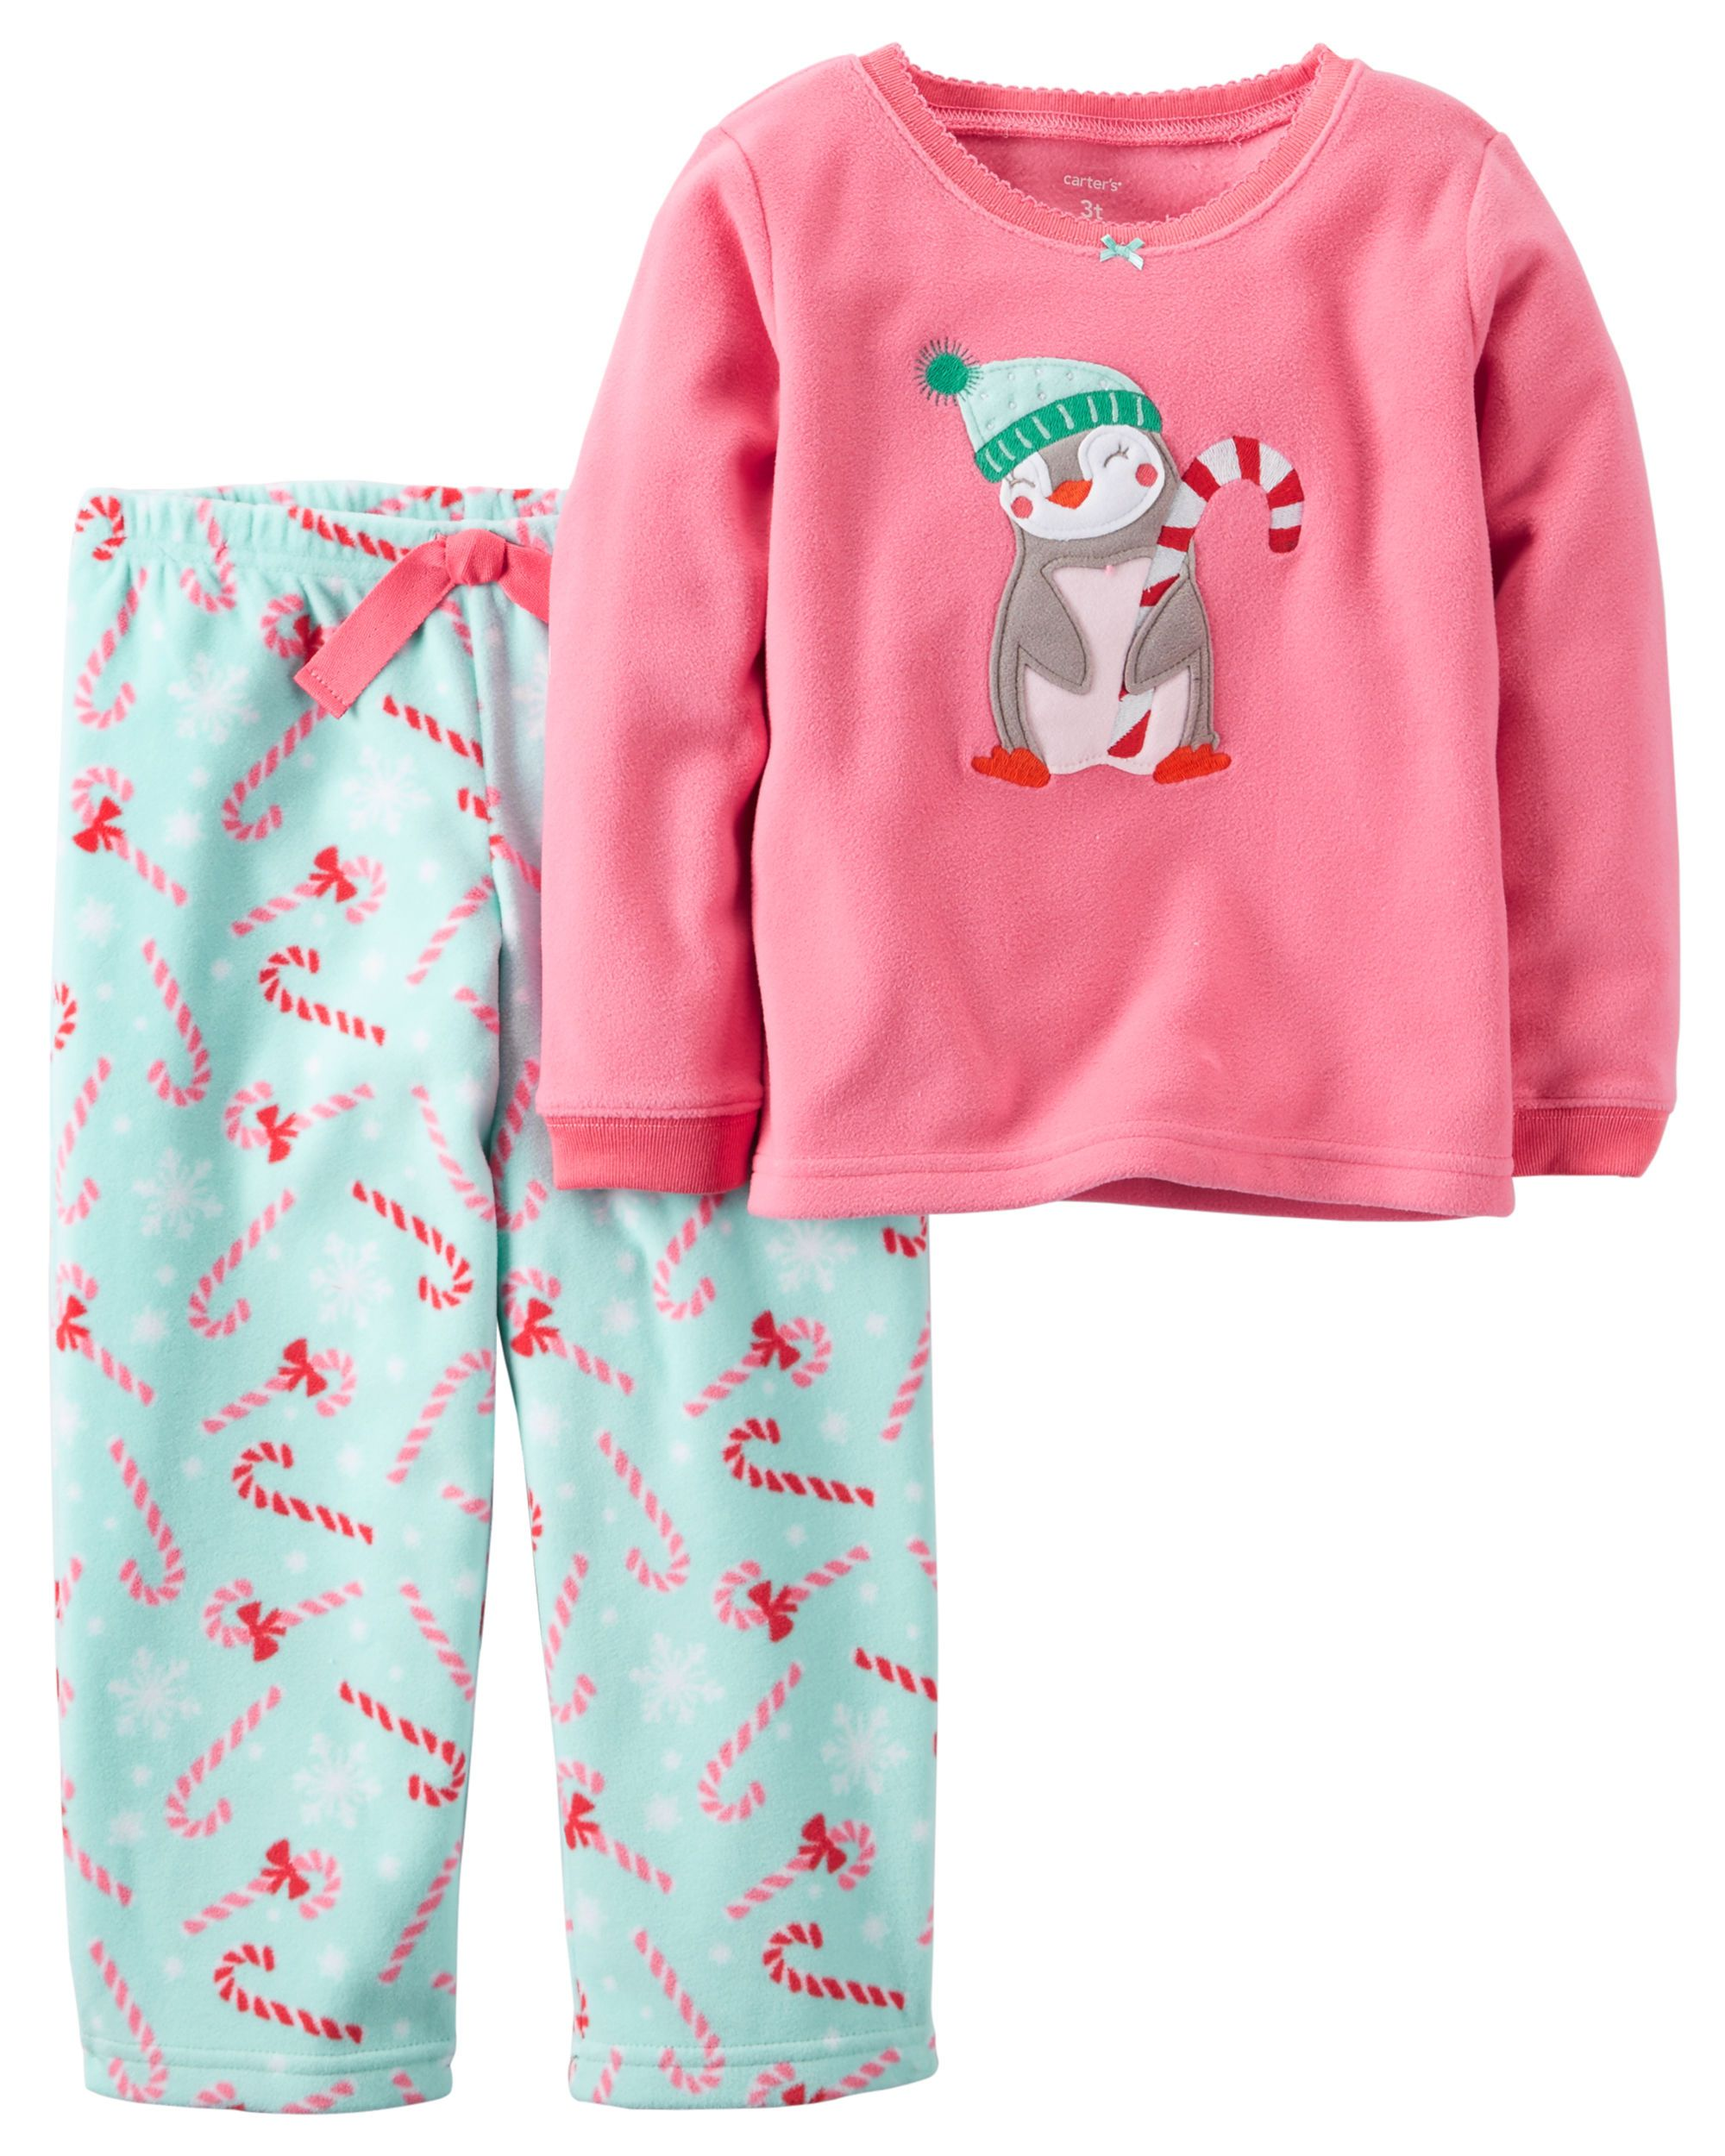 ebace6037056 Toddler Girl 2-Piece Fleece Christmas PJs from Carters.com. Shop ...